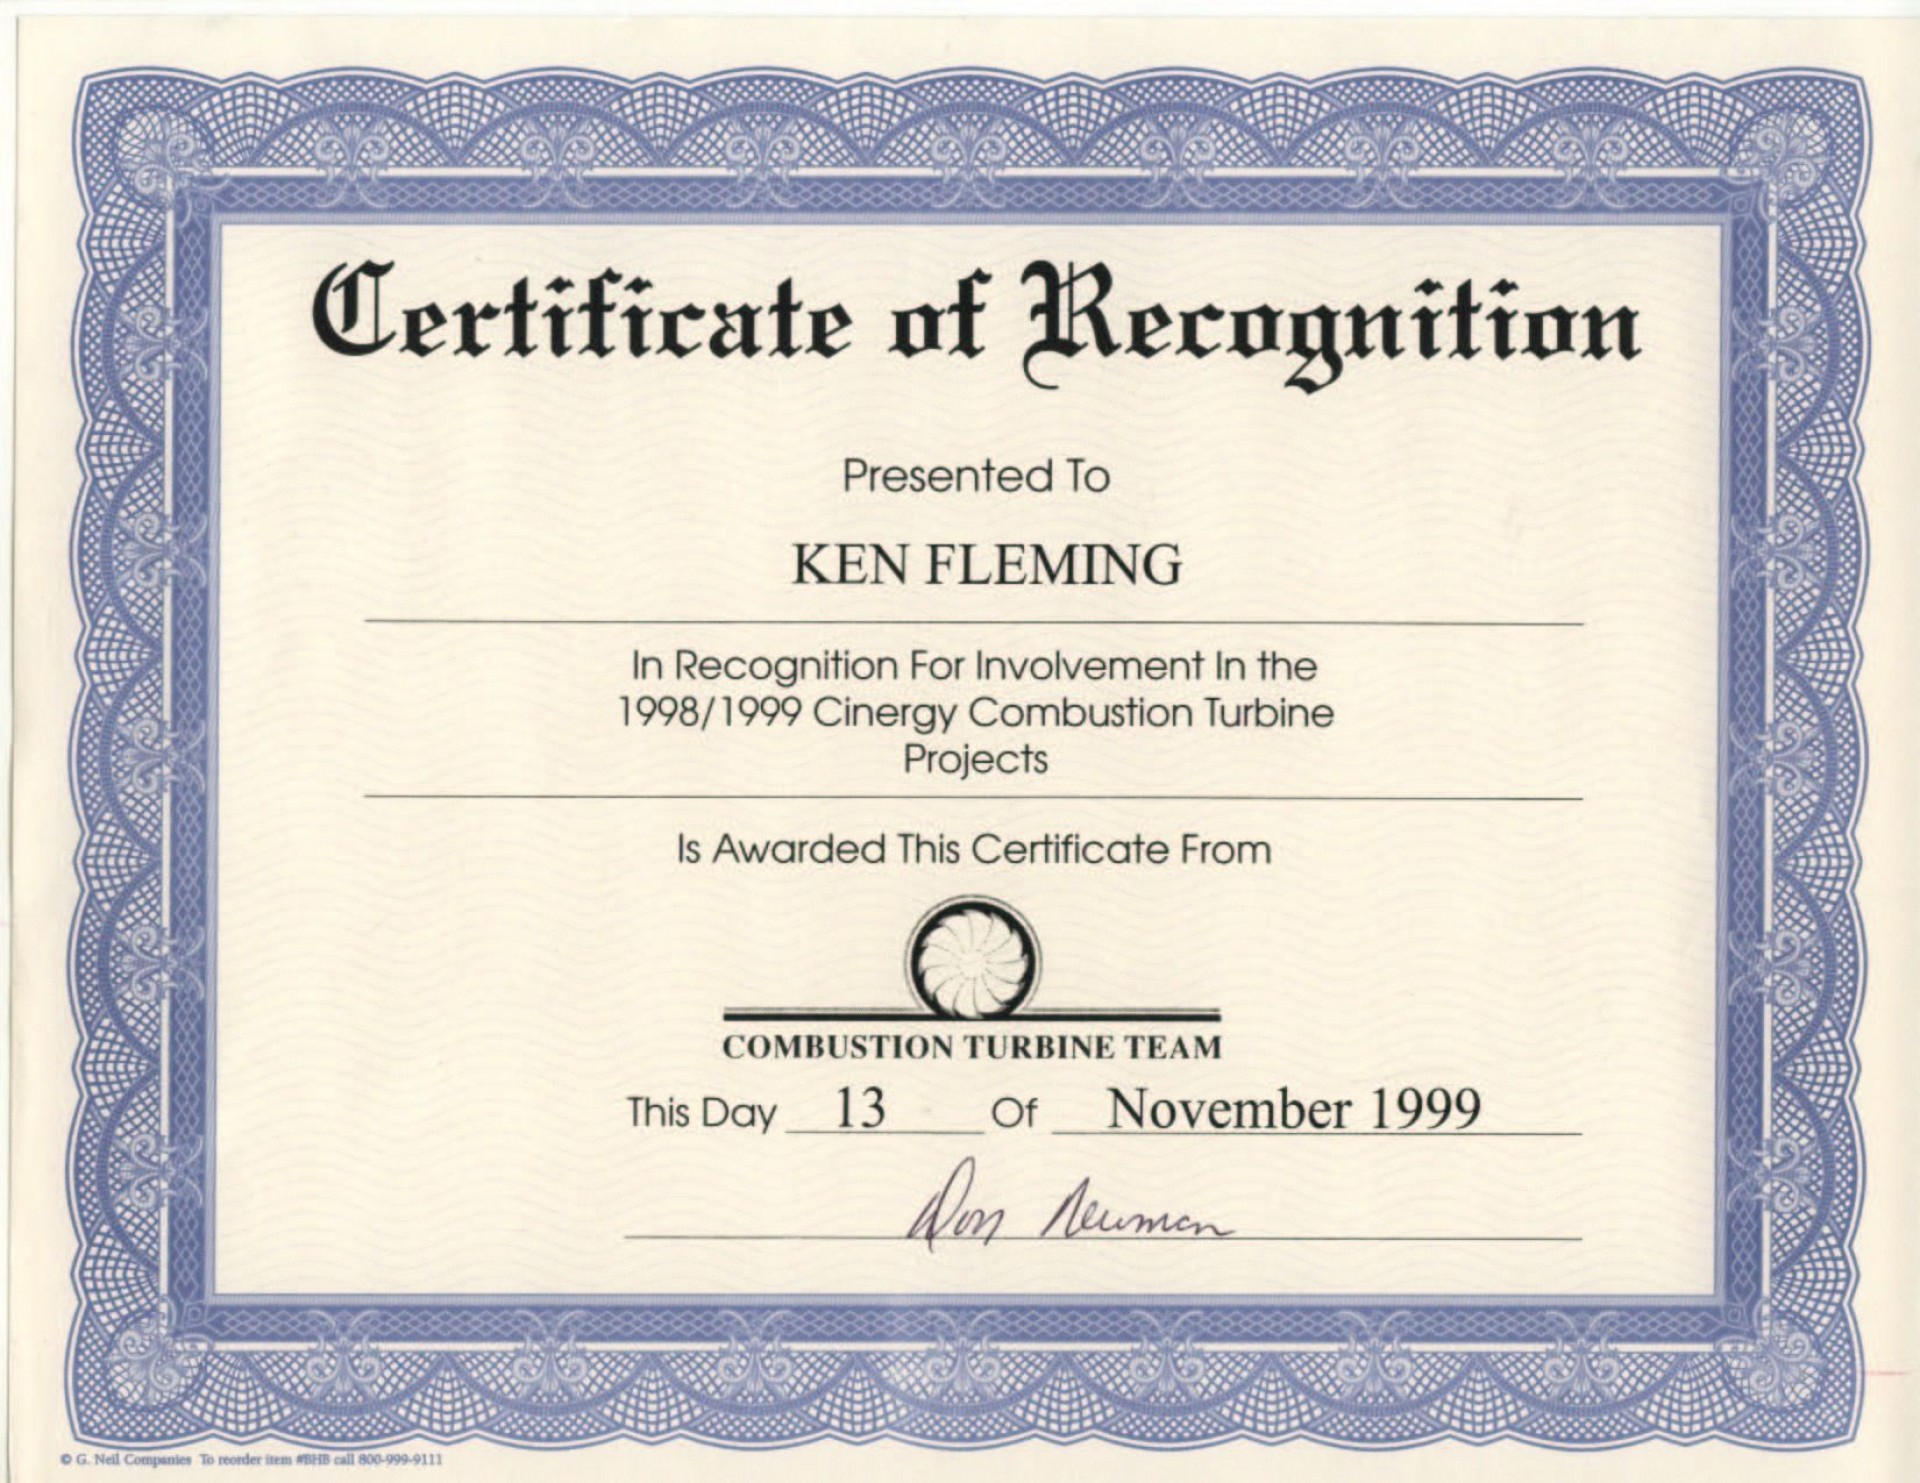 005 Fearsome Certificate Of Recognition Template Word Image  Award Microsoft Free1920